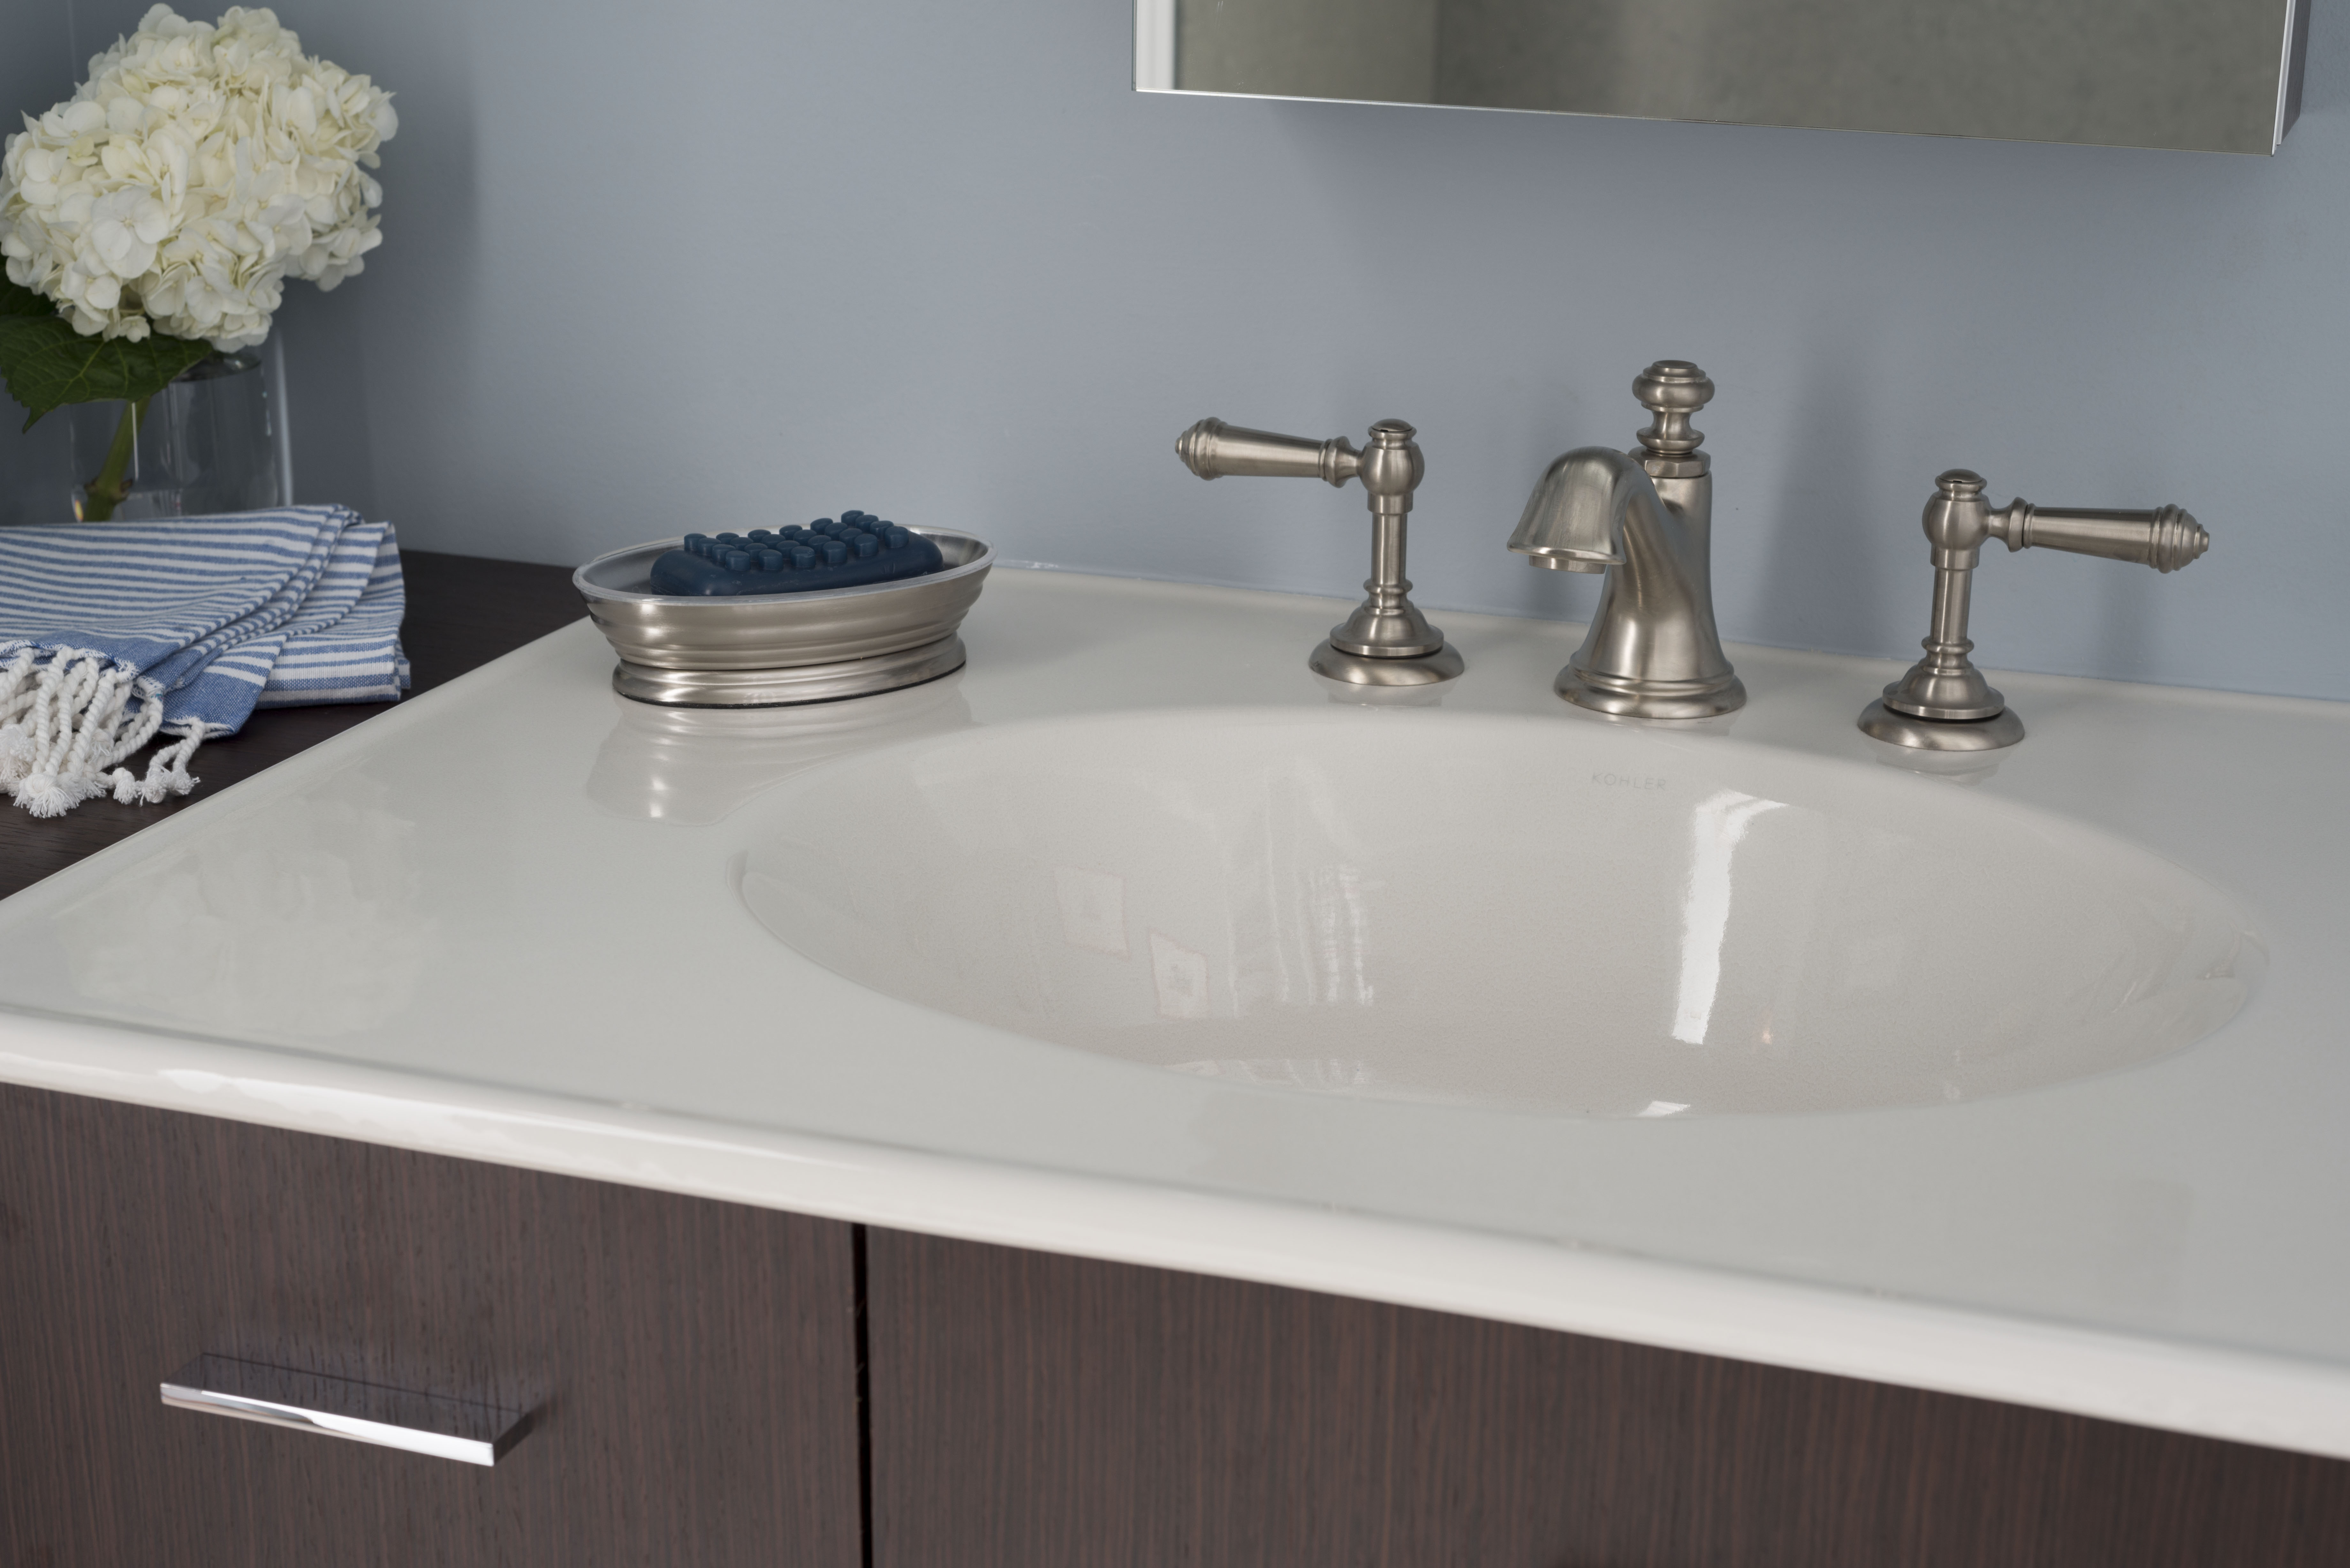 Artifacts Faucet Spout     Artifacts Faucet Handles     Ceramic/Impressions Vanity Top     If you are in a starter home you can create a simple yet charming look by pairing a Brushed Nickel finish with pastel colors.